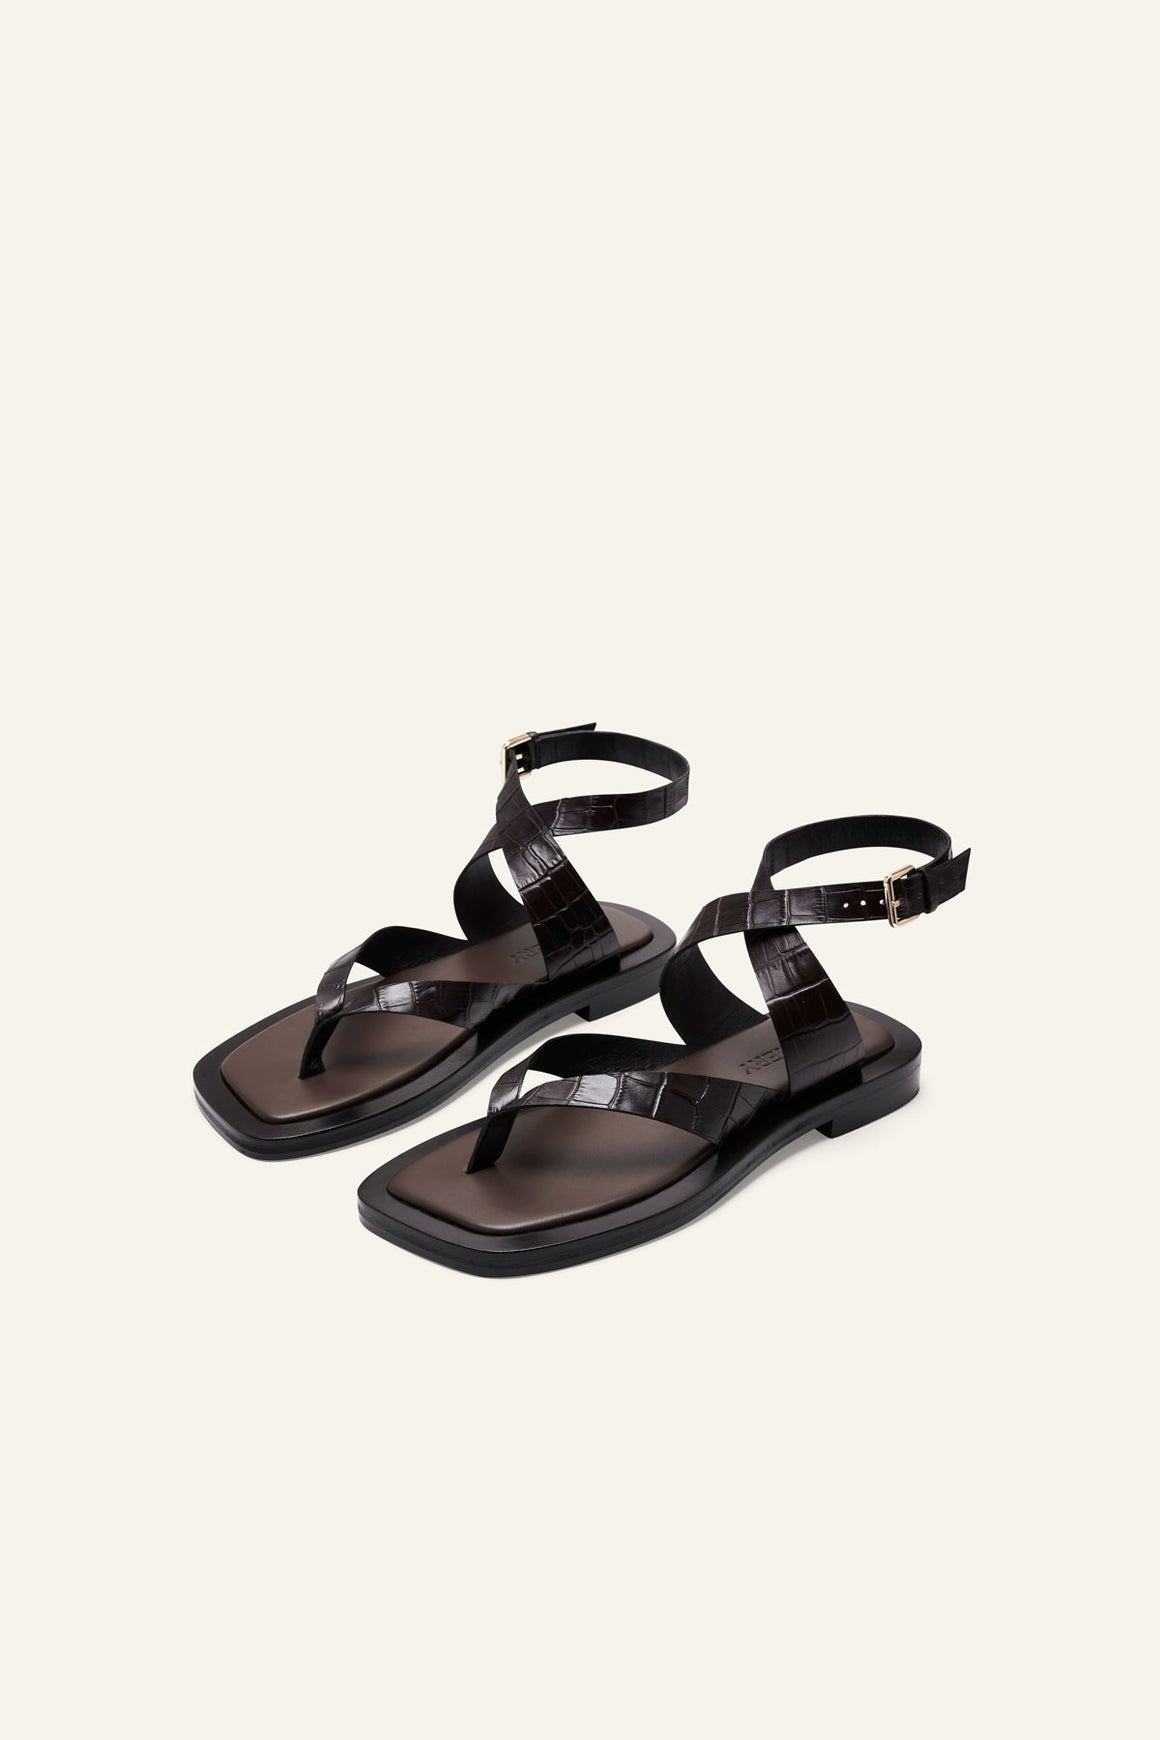 The Dylan Sandal